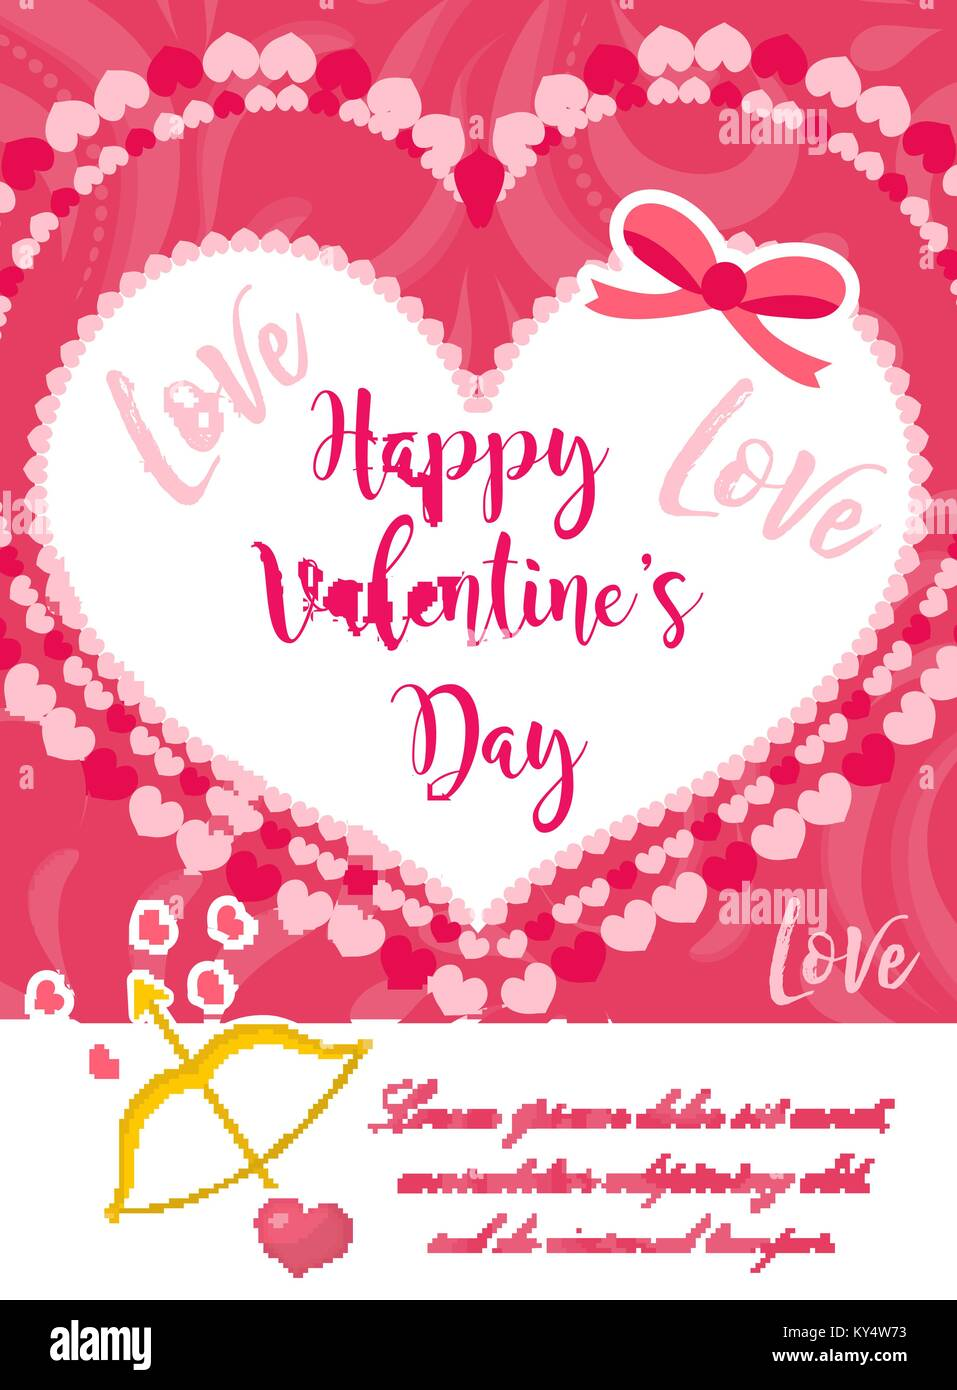 Happy Valentine S Day Cute Poster Invitation Greeting Card Stock